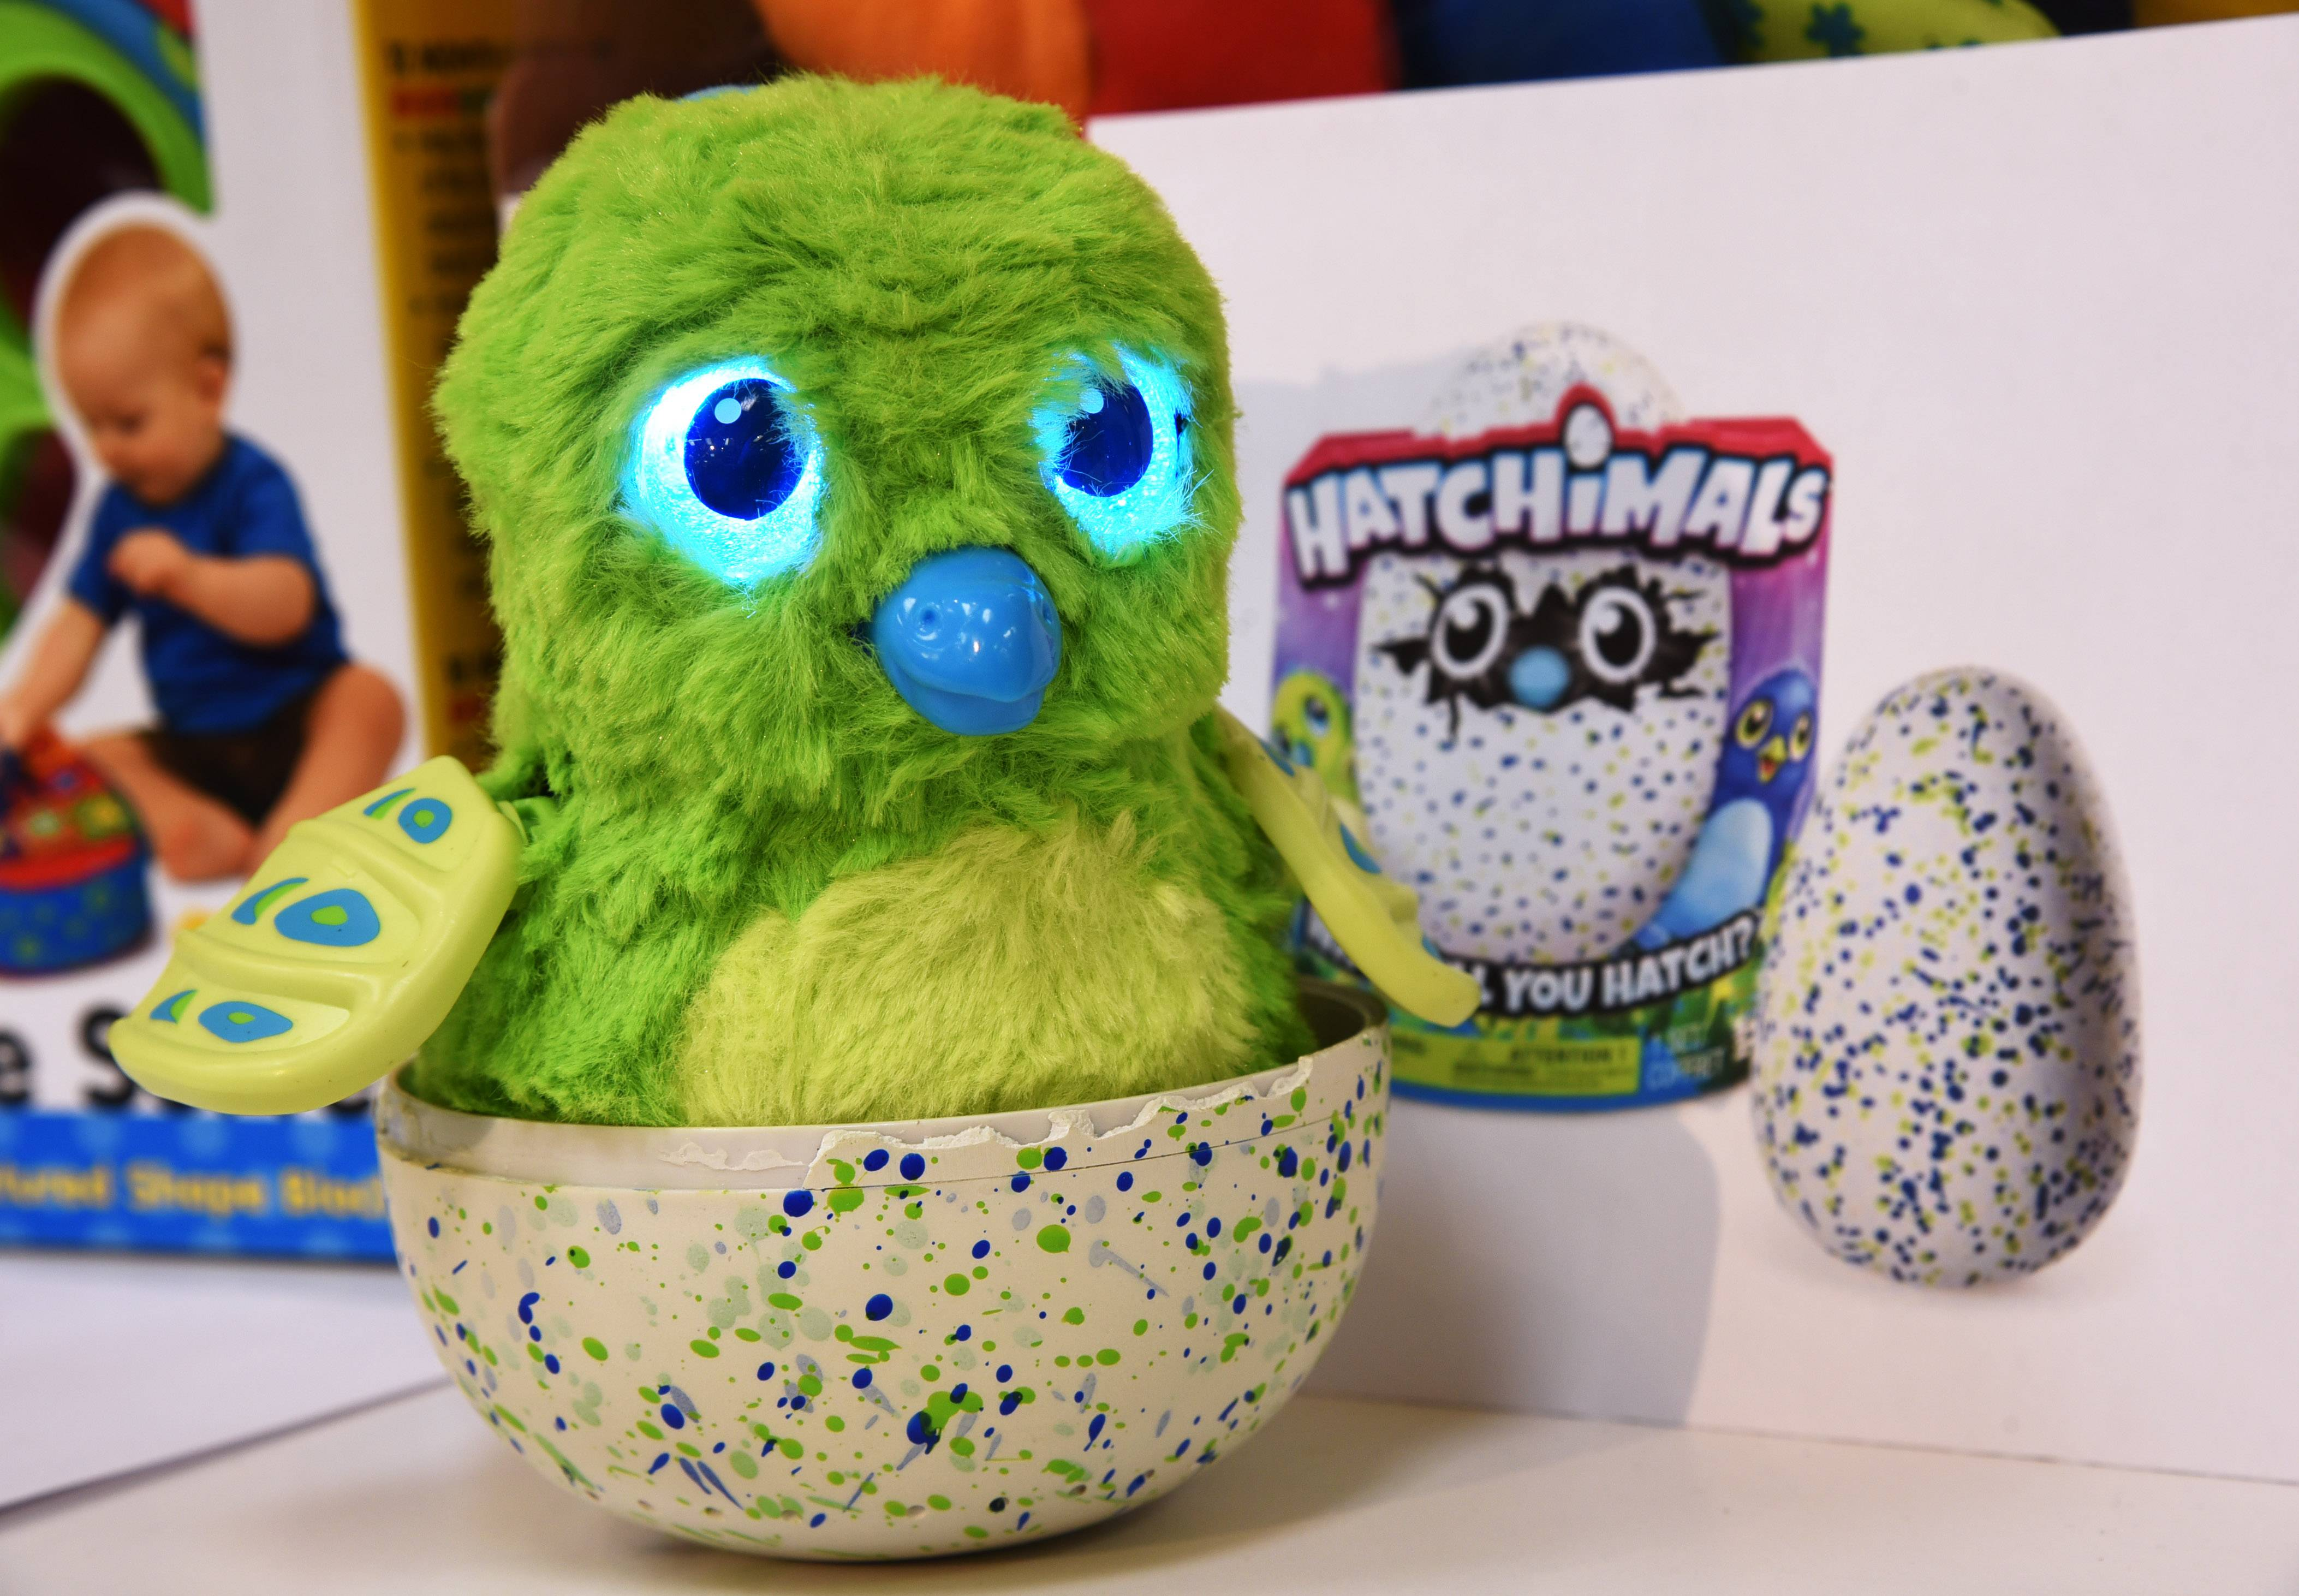 Hatchimals sold out quickly at the Lake Zurich Learning Express store.